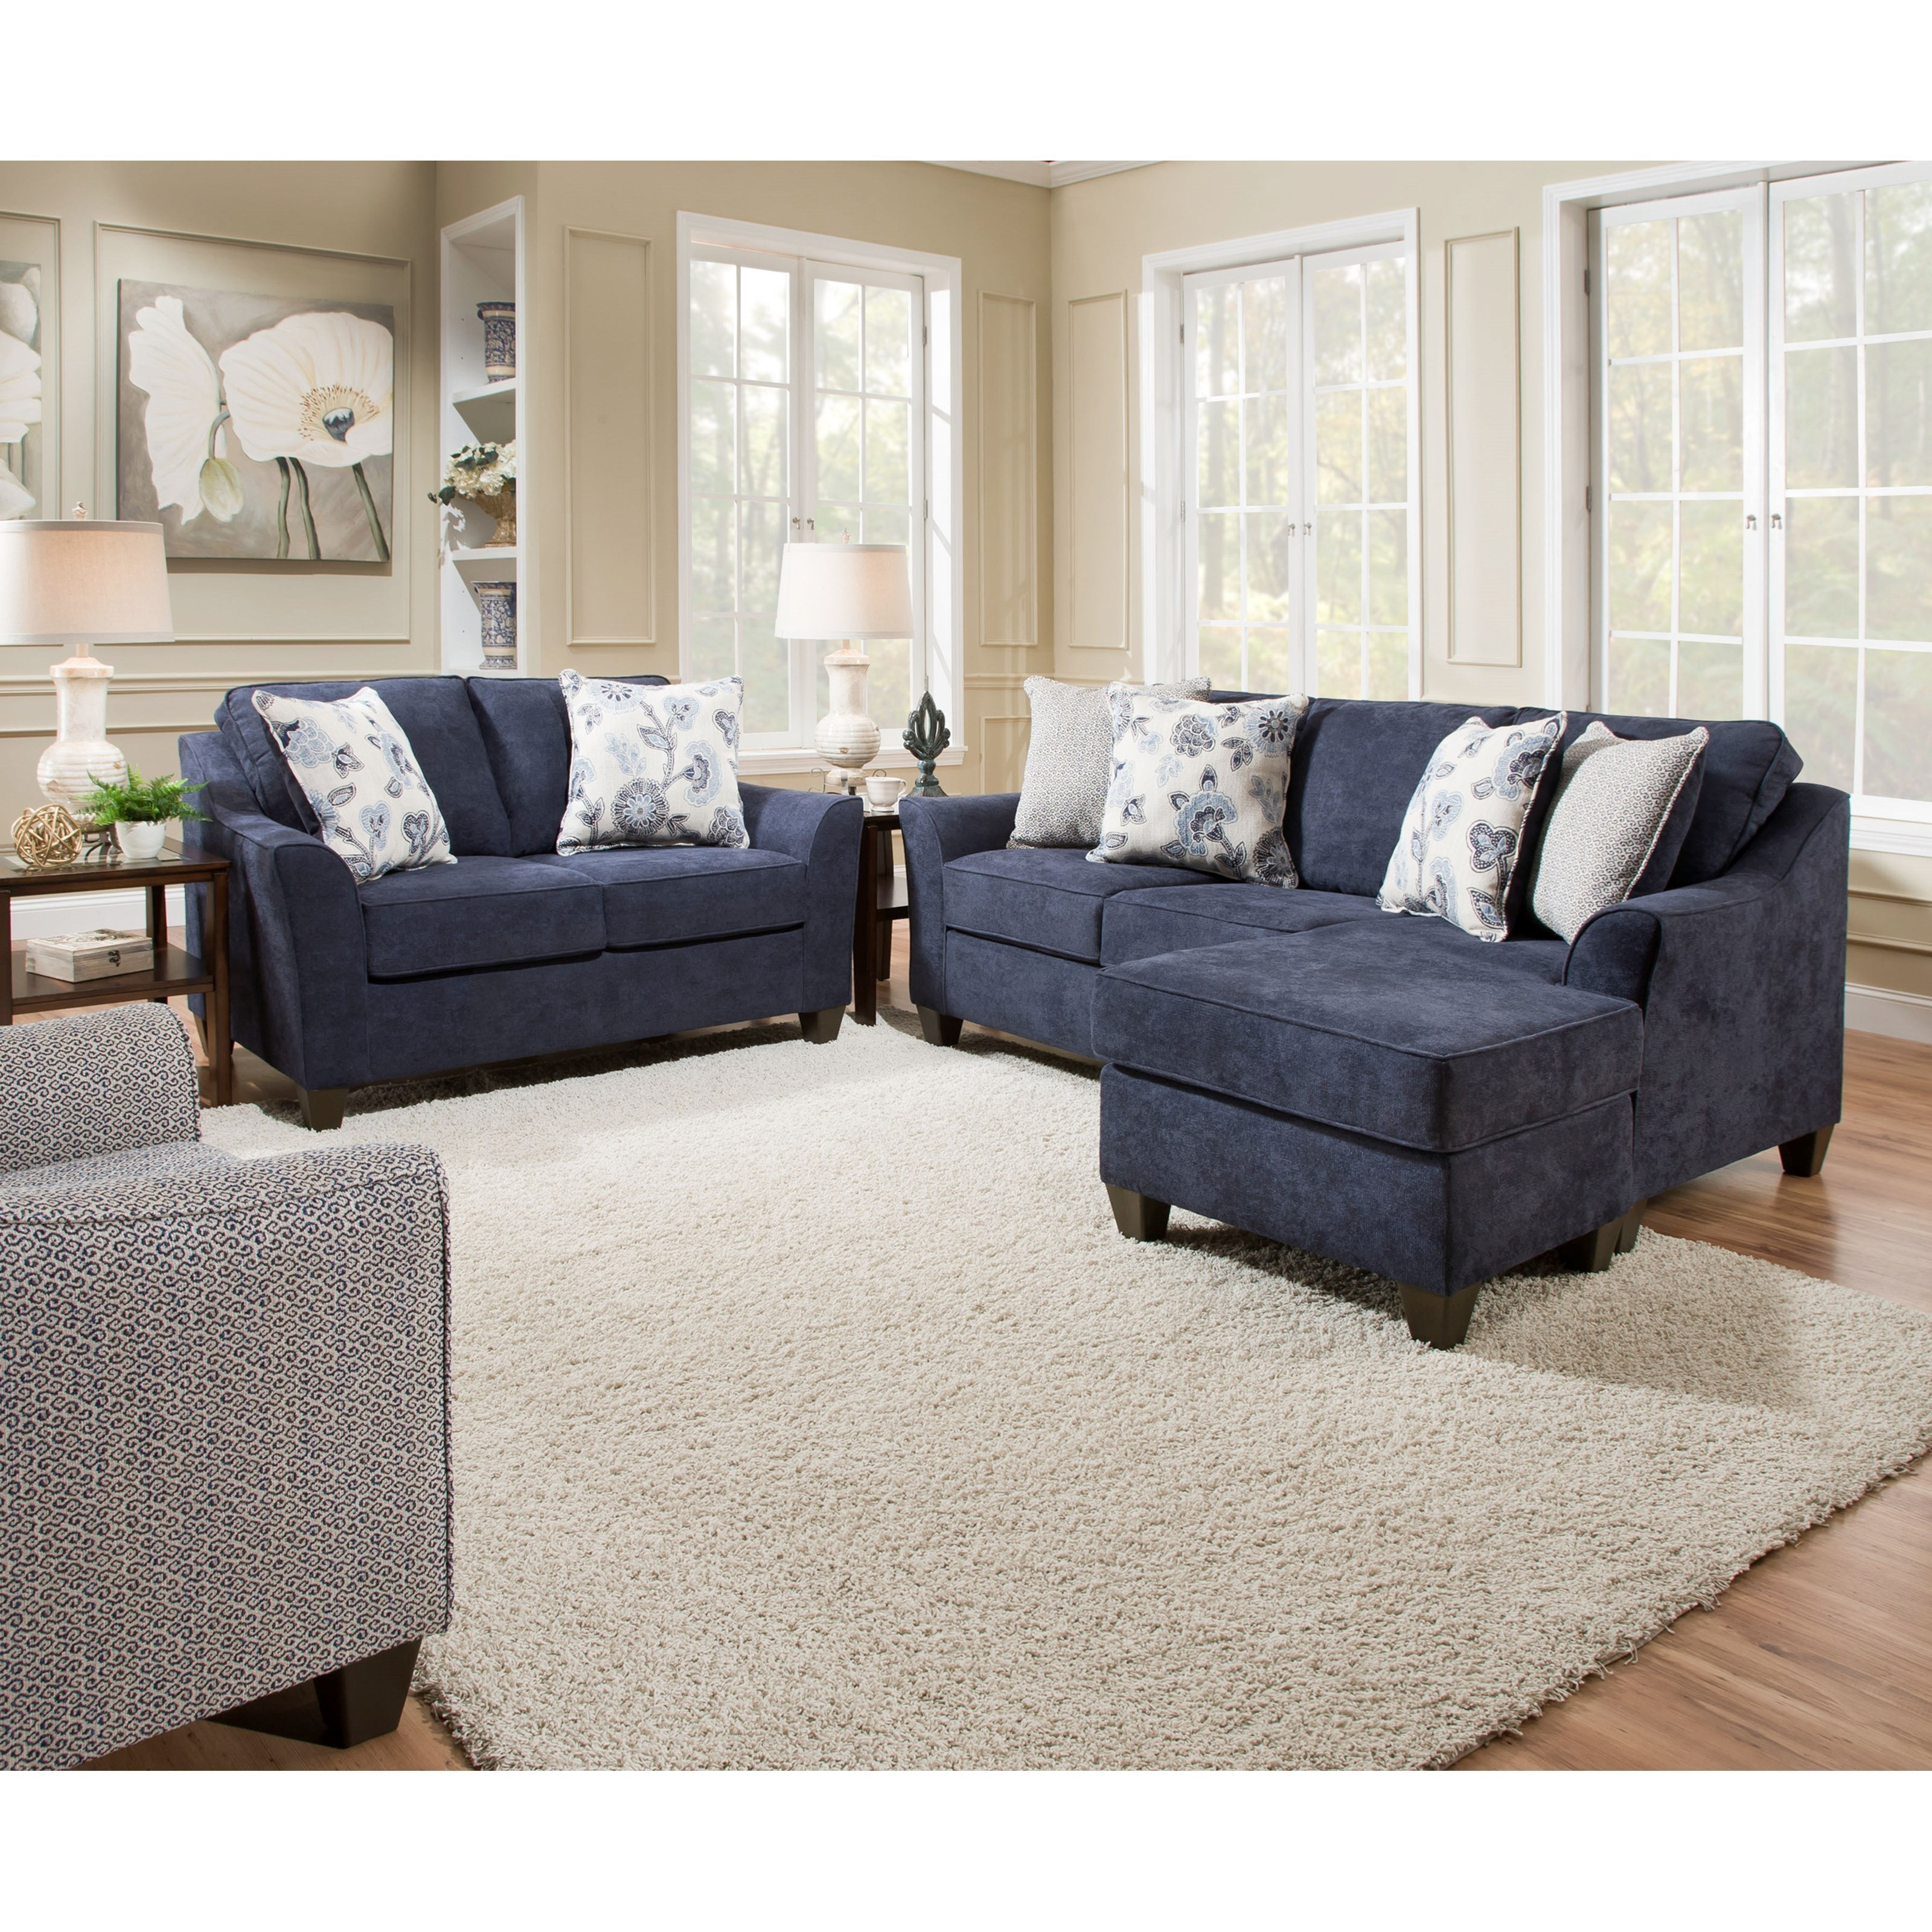 simmons reversible chaise sofa baby chair malaysia upholstery 4330 4330sofachaise contemporary with 4330sofa